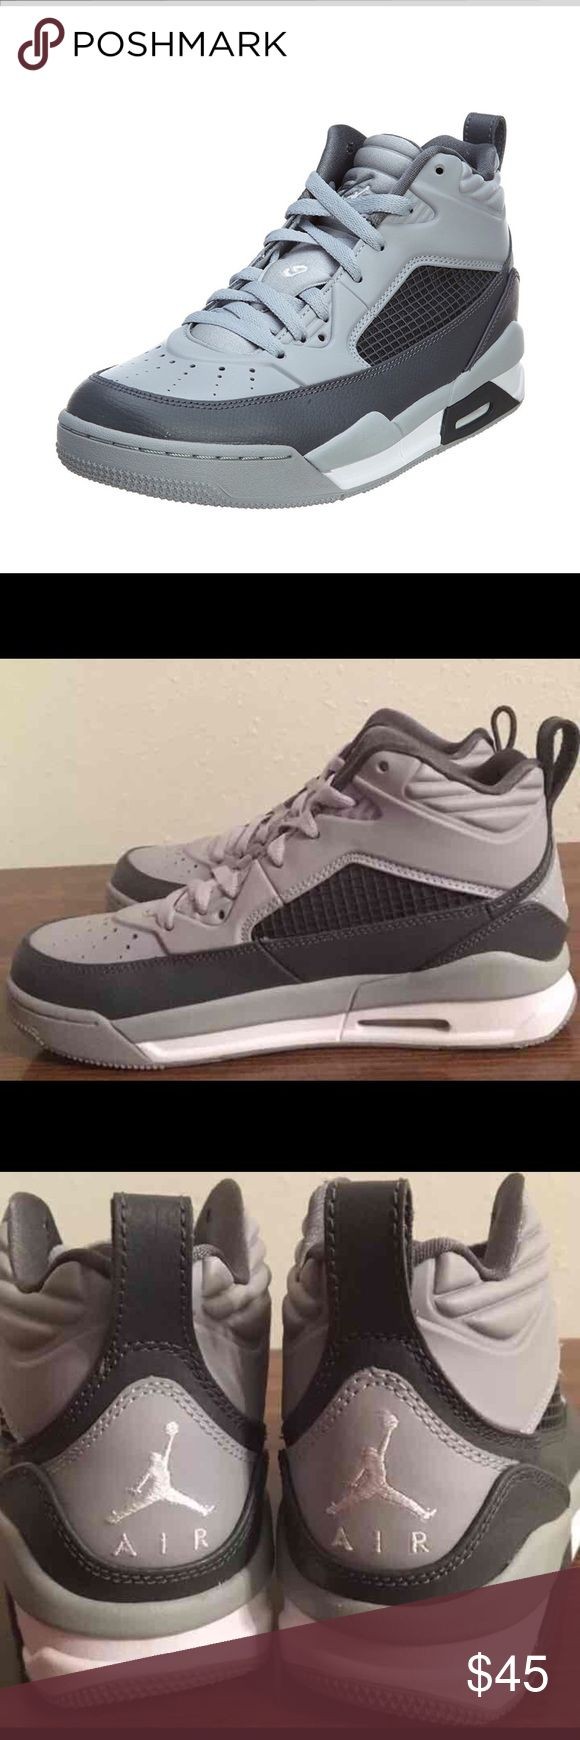 Jordan Flight 9.5 BG size 6Y Jordan Flight 9.5 BG size 6Y Nike Shoes Sneakers